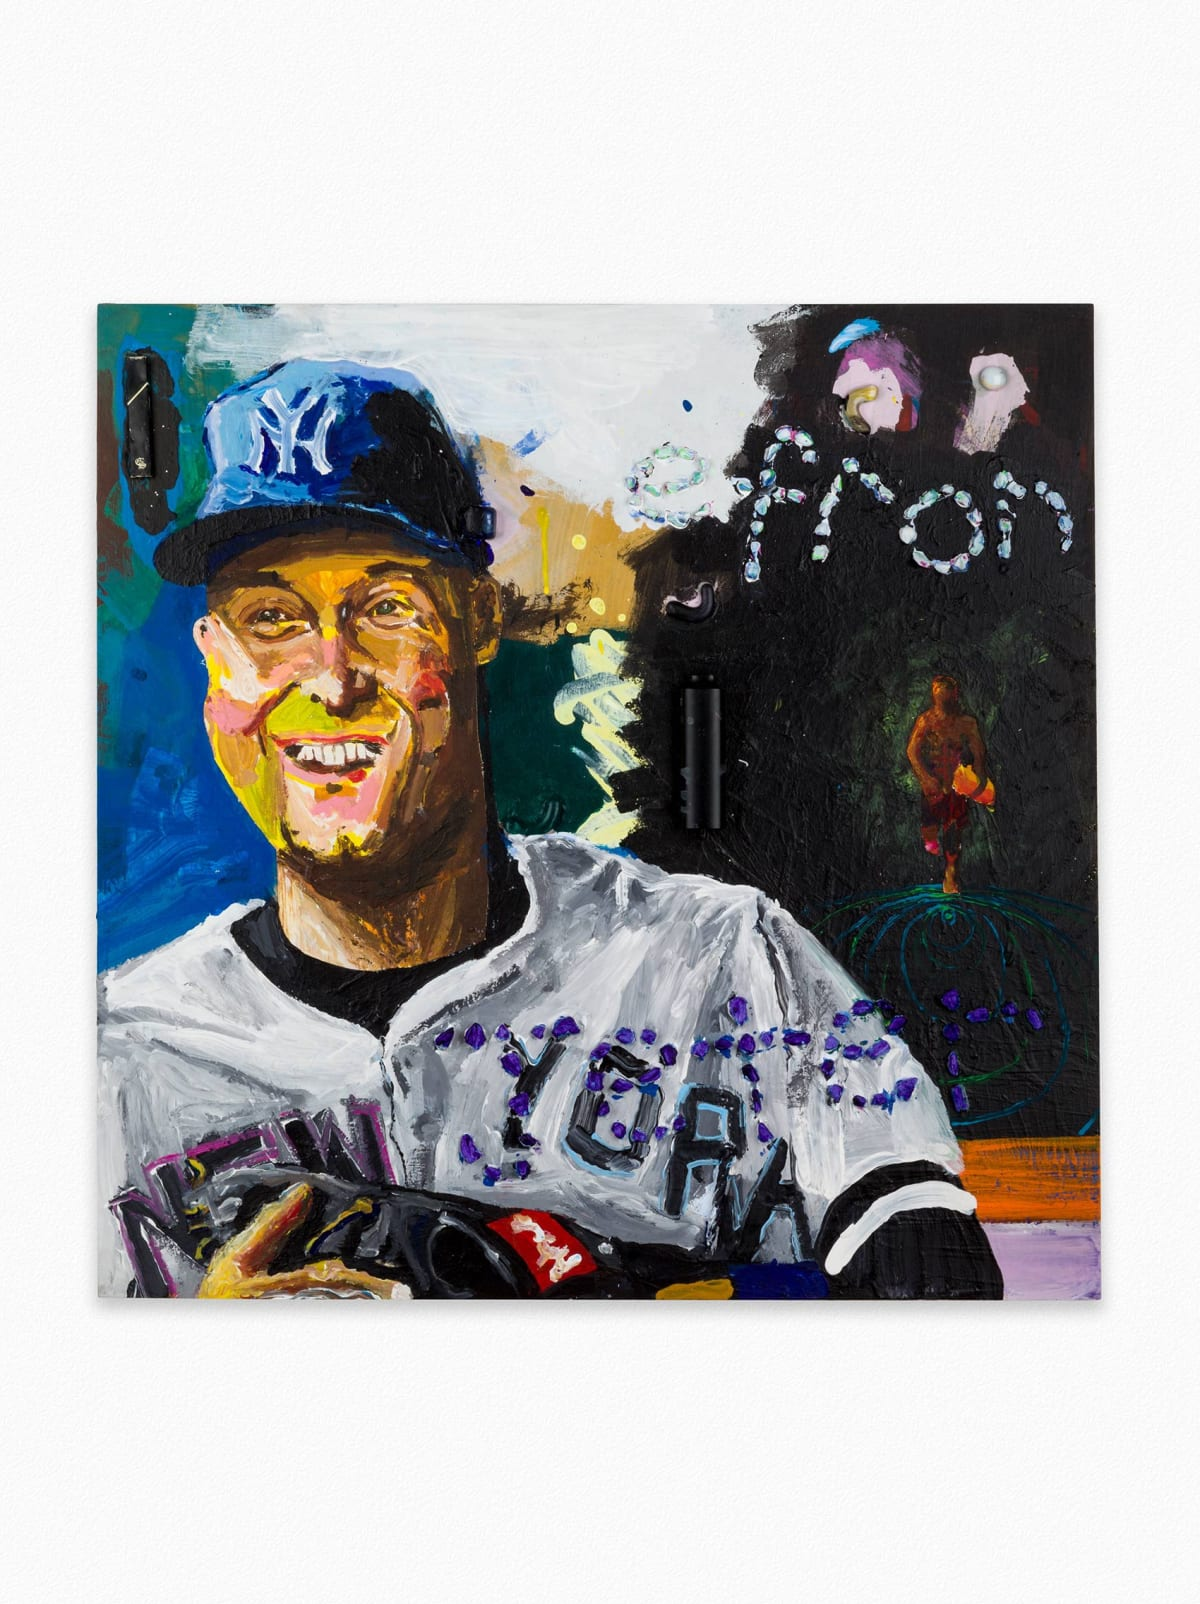 david bavaria, artist, collage in color of baseball player and his name 'Efron'